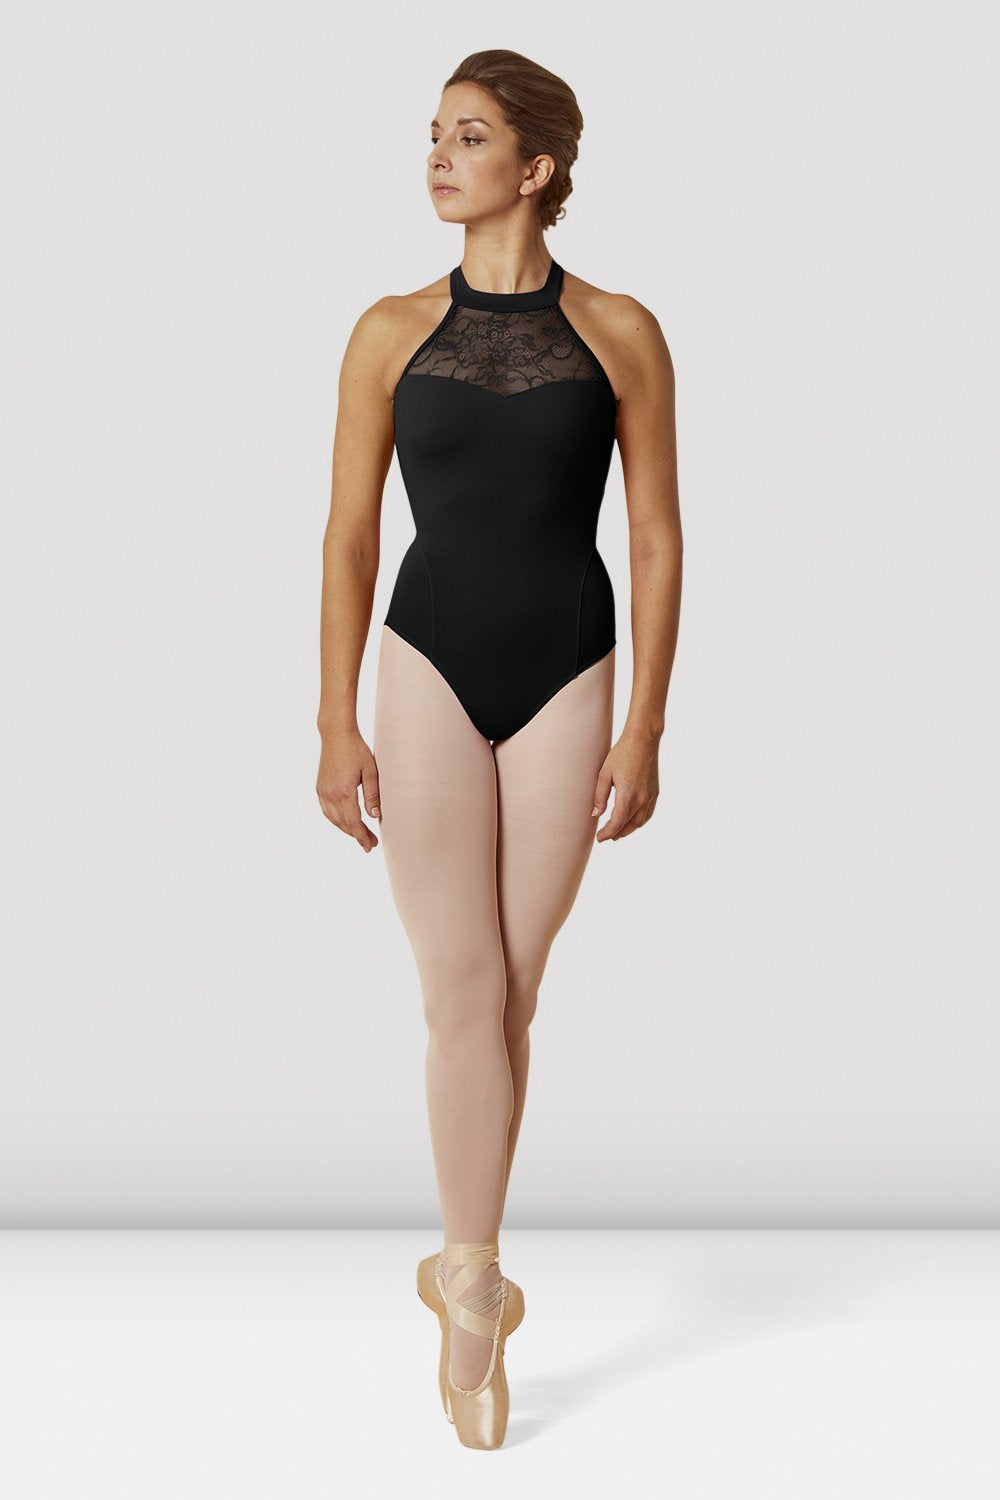 Black Bloch Ladies Lace Bodice Halter Neck Leotard on female model en pointe in fifth position